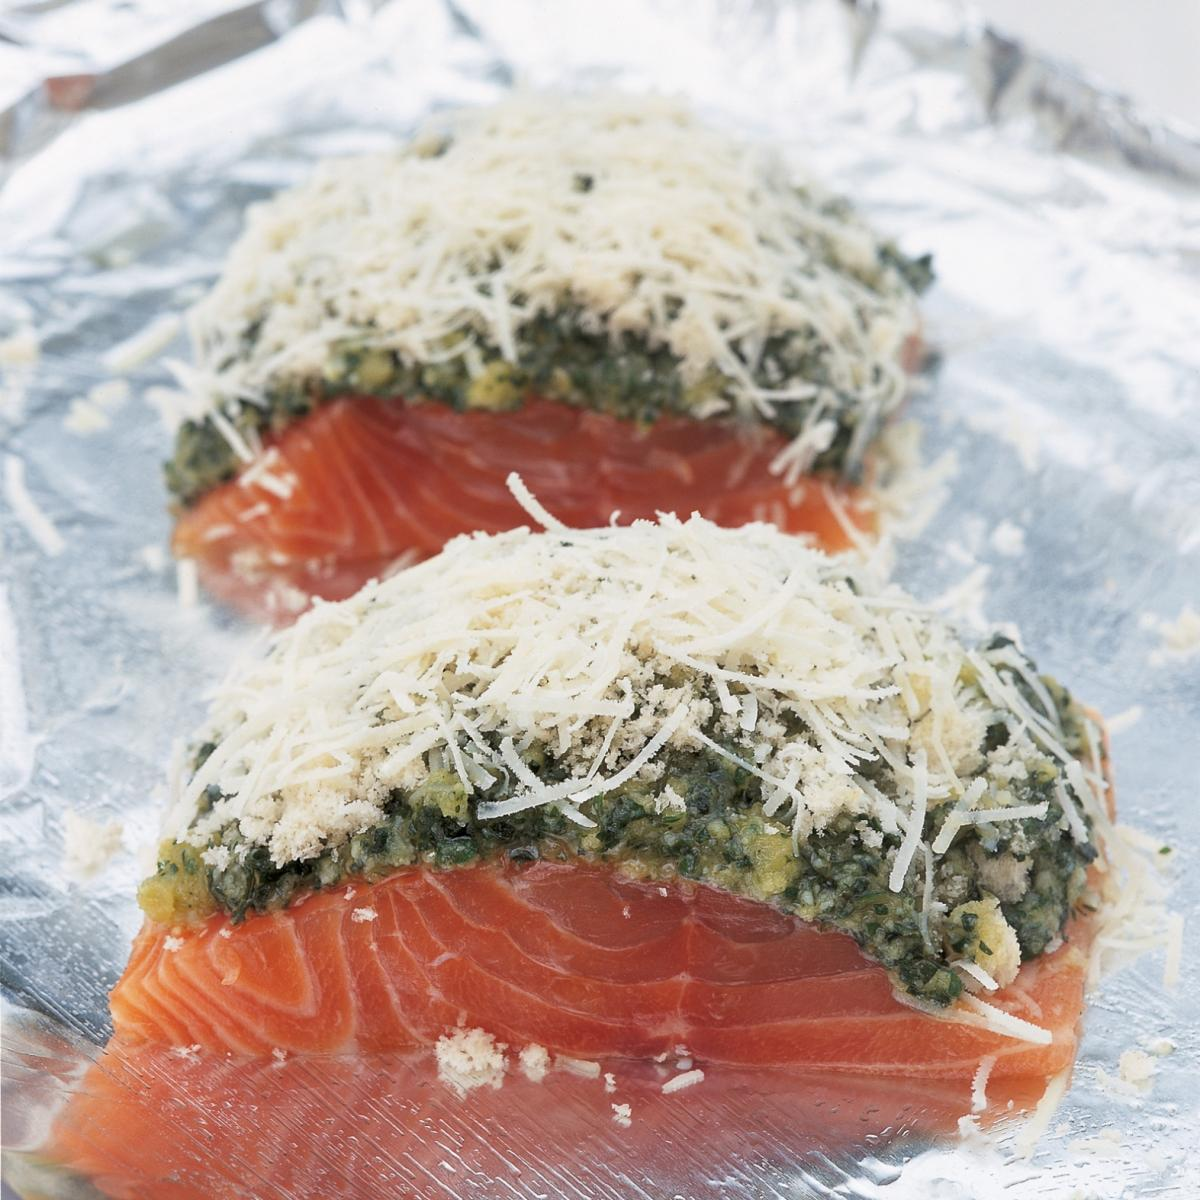 Htc roasted salmon fillets with a crusted pecorino and pesto topping version1